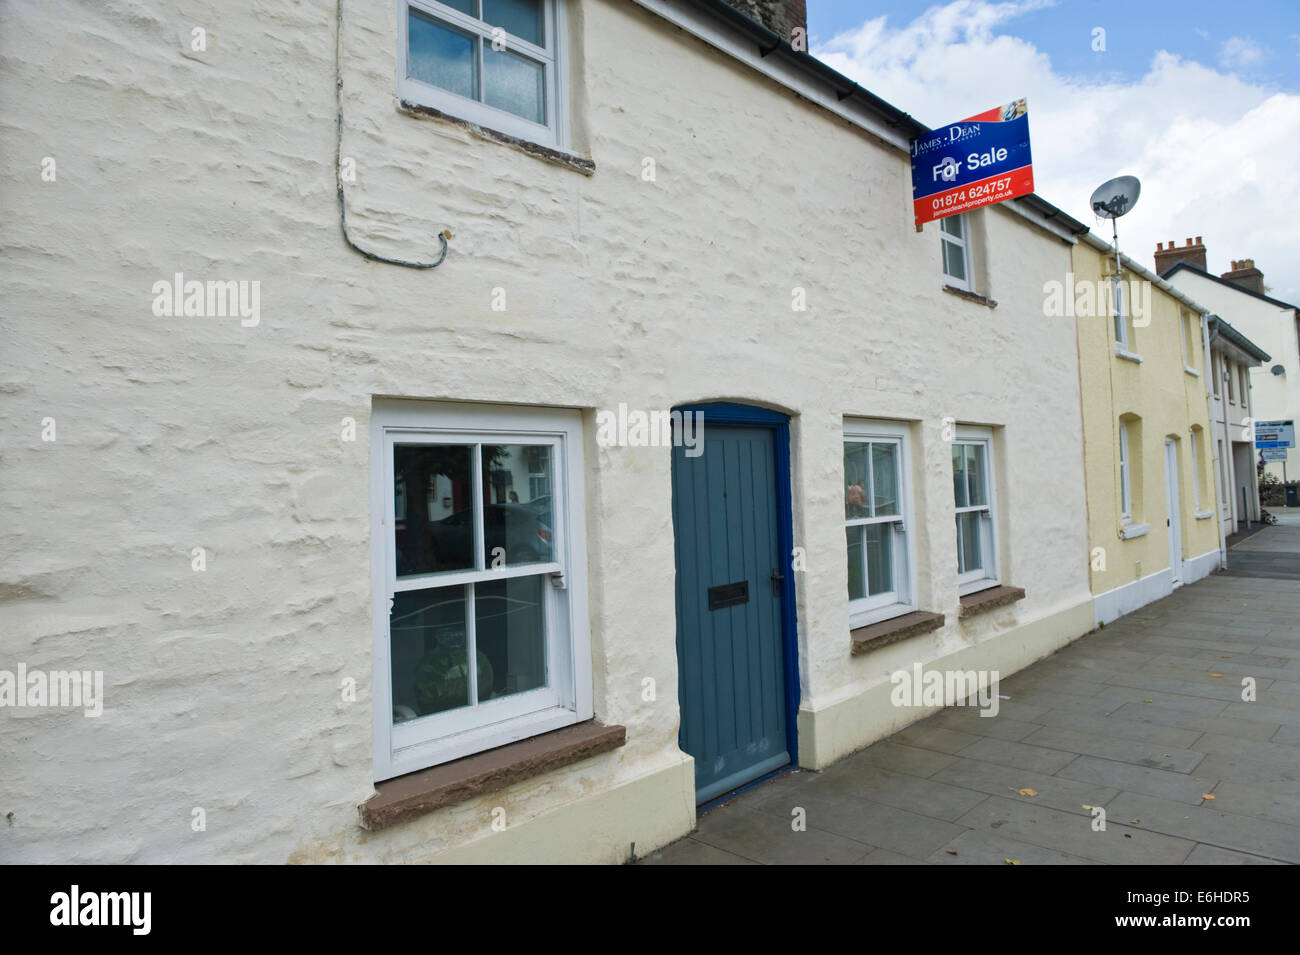 Wooden front doors of period terraced houses with sliding sash wooden front doors of period terraced houses with sliding sash windows in brecon powys wales uk rubansaba